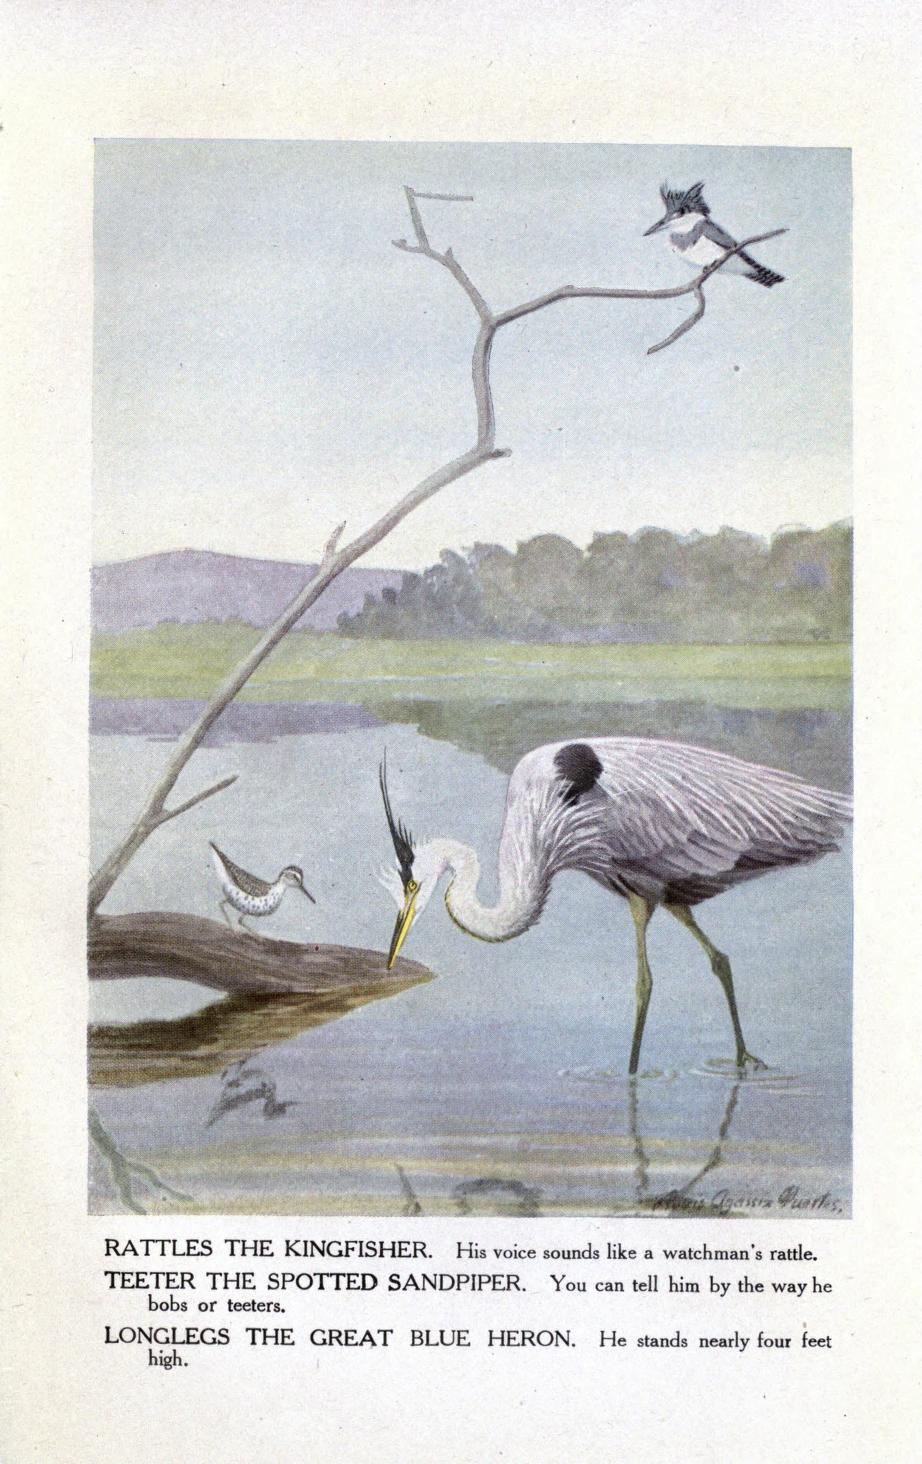 Color illustration of a wading great blue heron, a spotted sandpiper on a log with its reflection in the water, and a belted kingfisher male perched on a branch above the other two birds